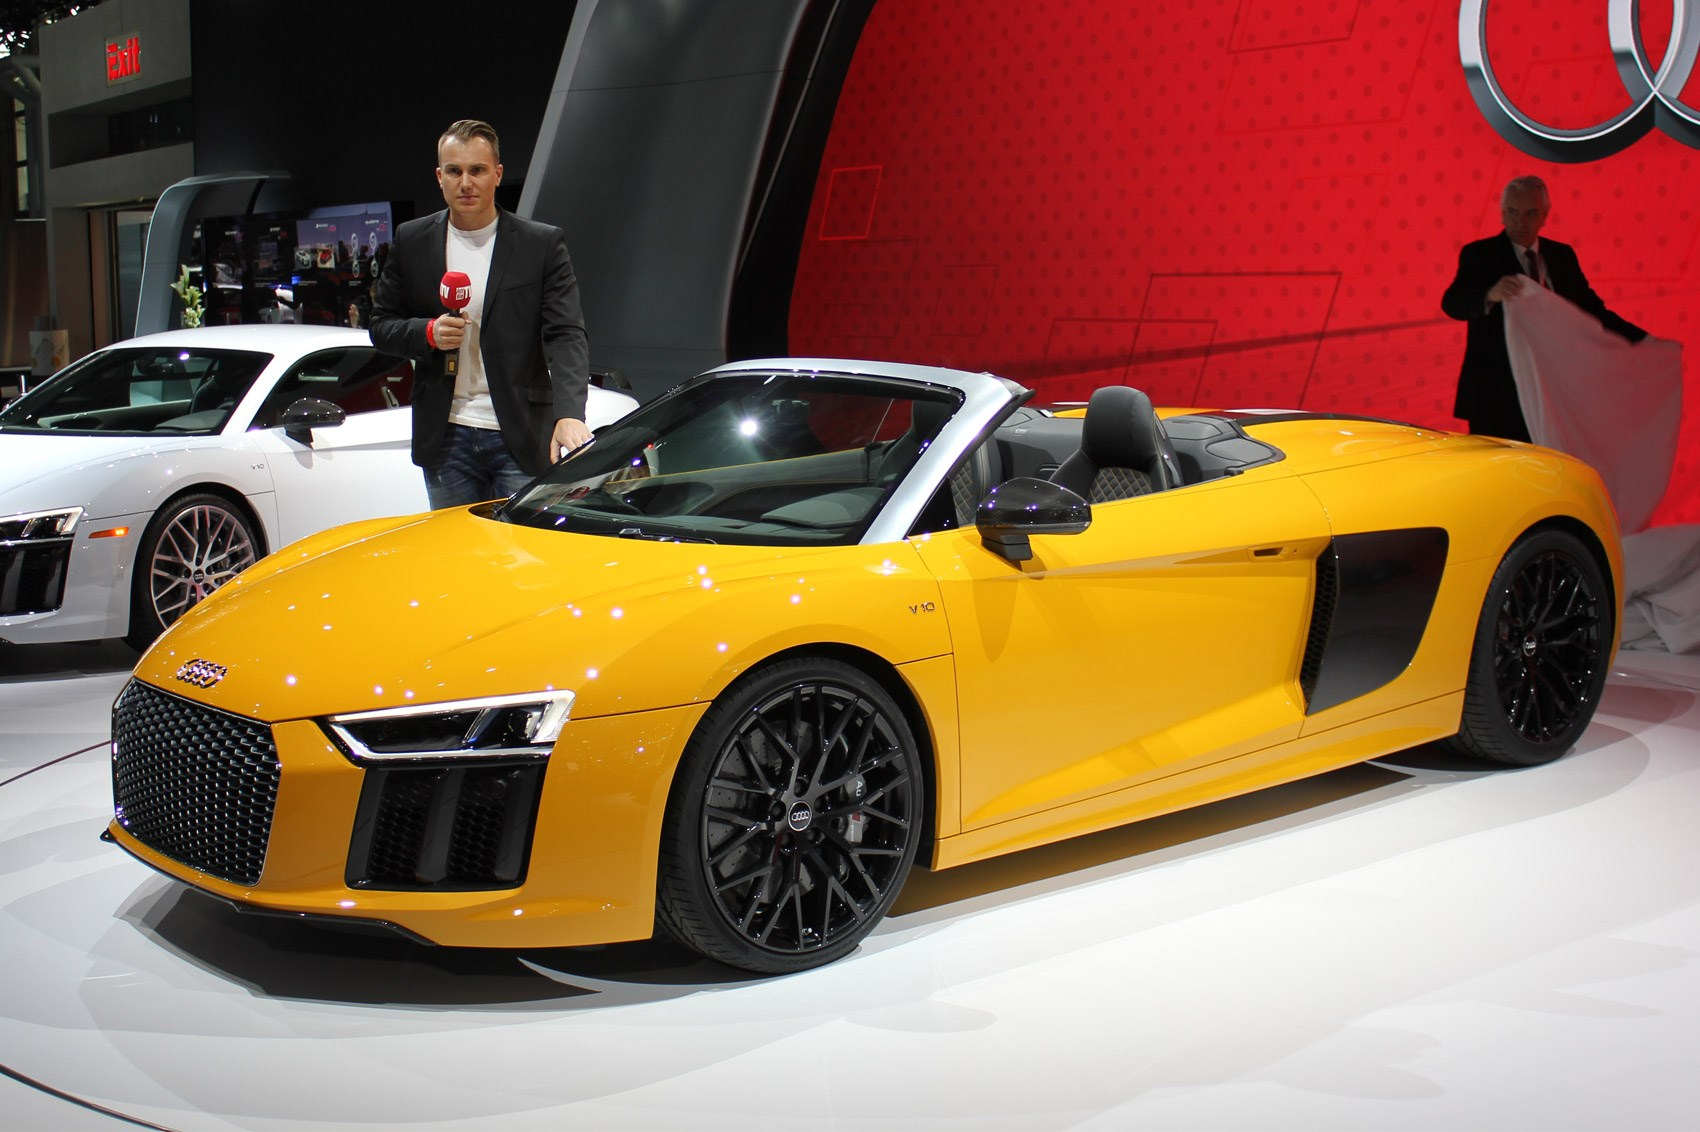 new audi r8 spyder revealed at 2016 new york motor show by car magazine. Black Bedroom Furniture Sets. Home Design Ideas